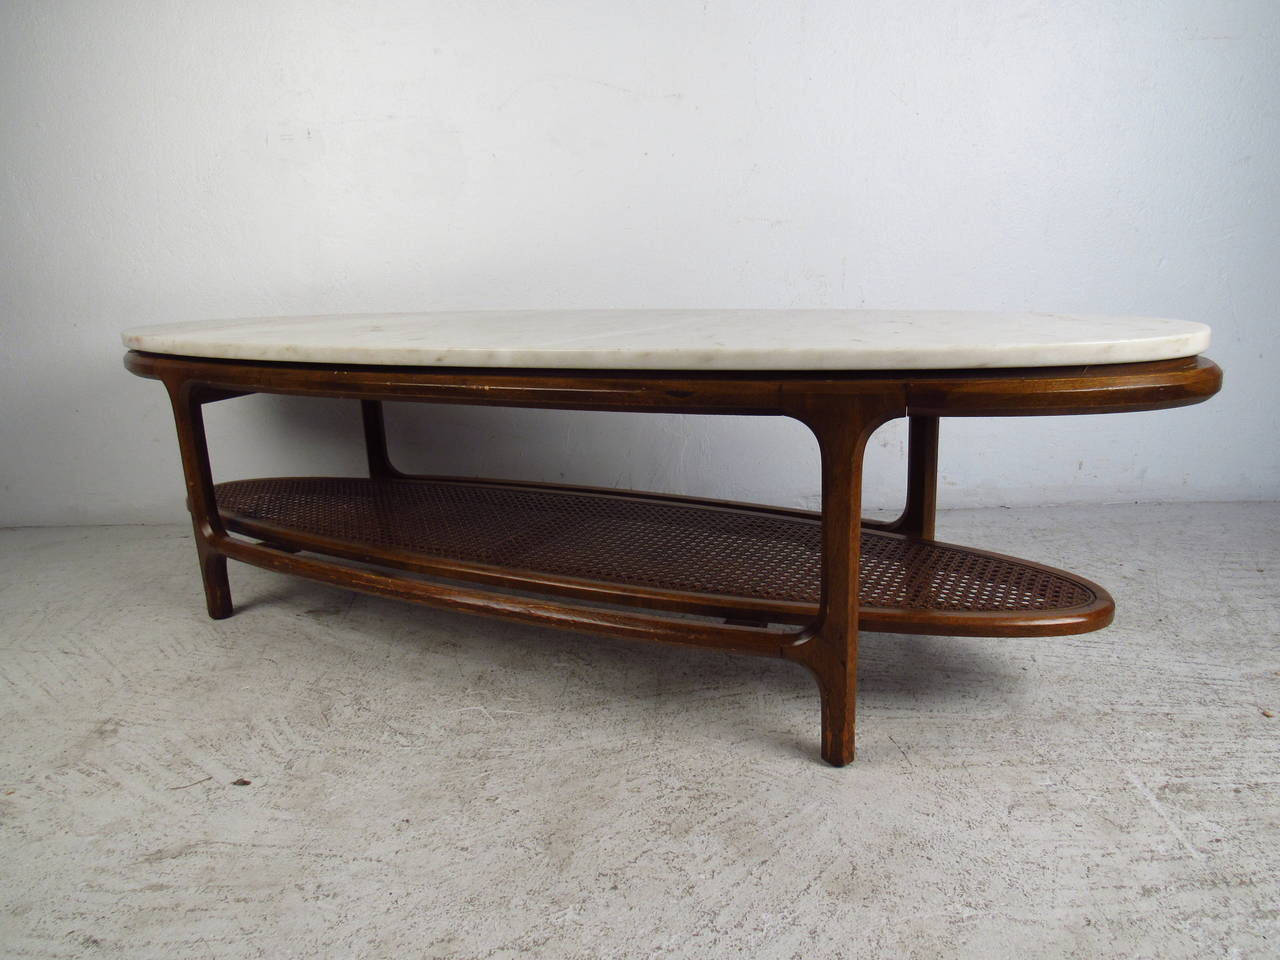 MidCentury Modern MarbleTop Coffee Table with Cane Shelf For Sale